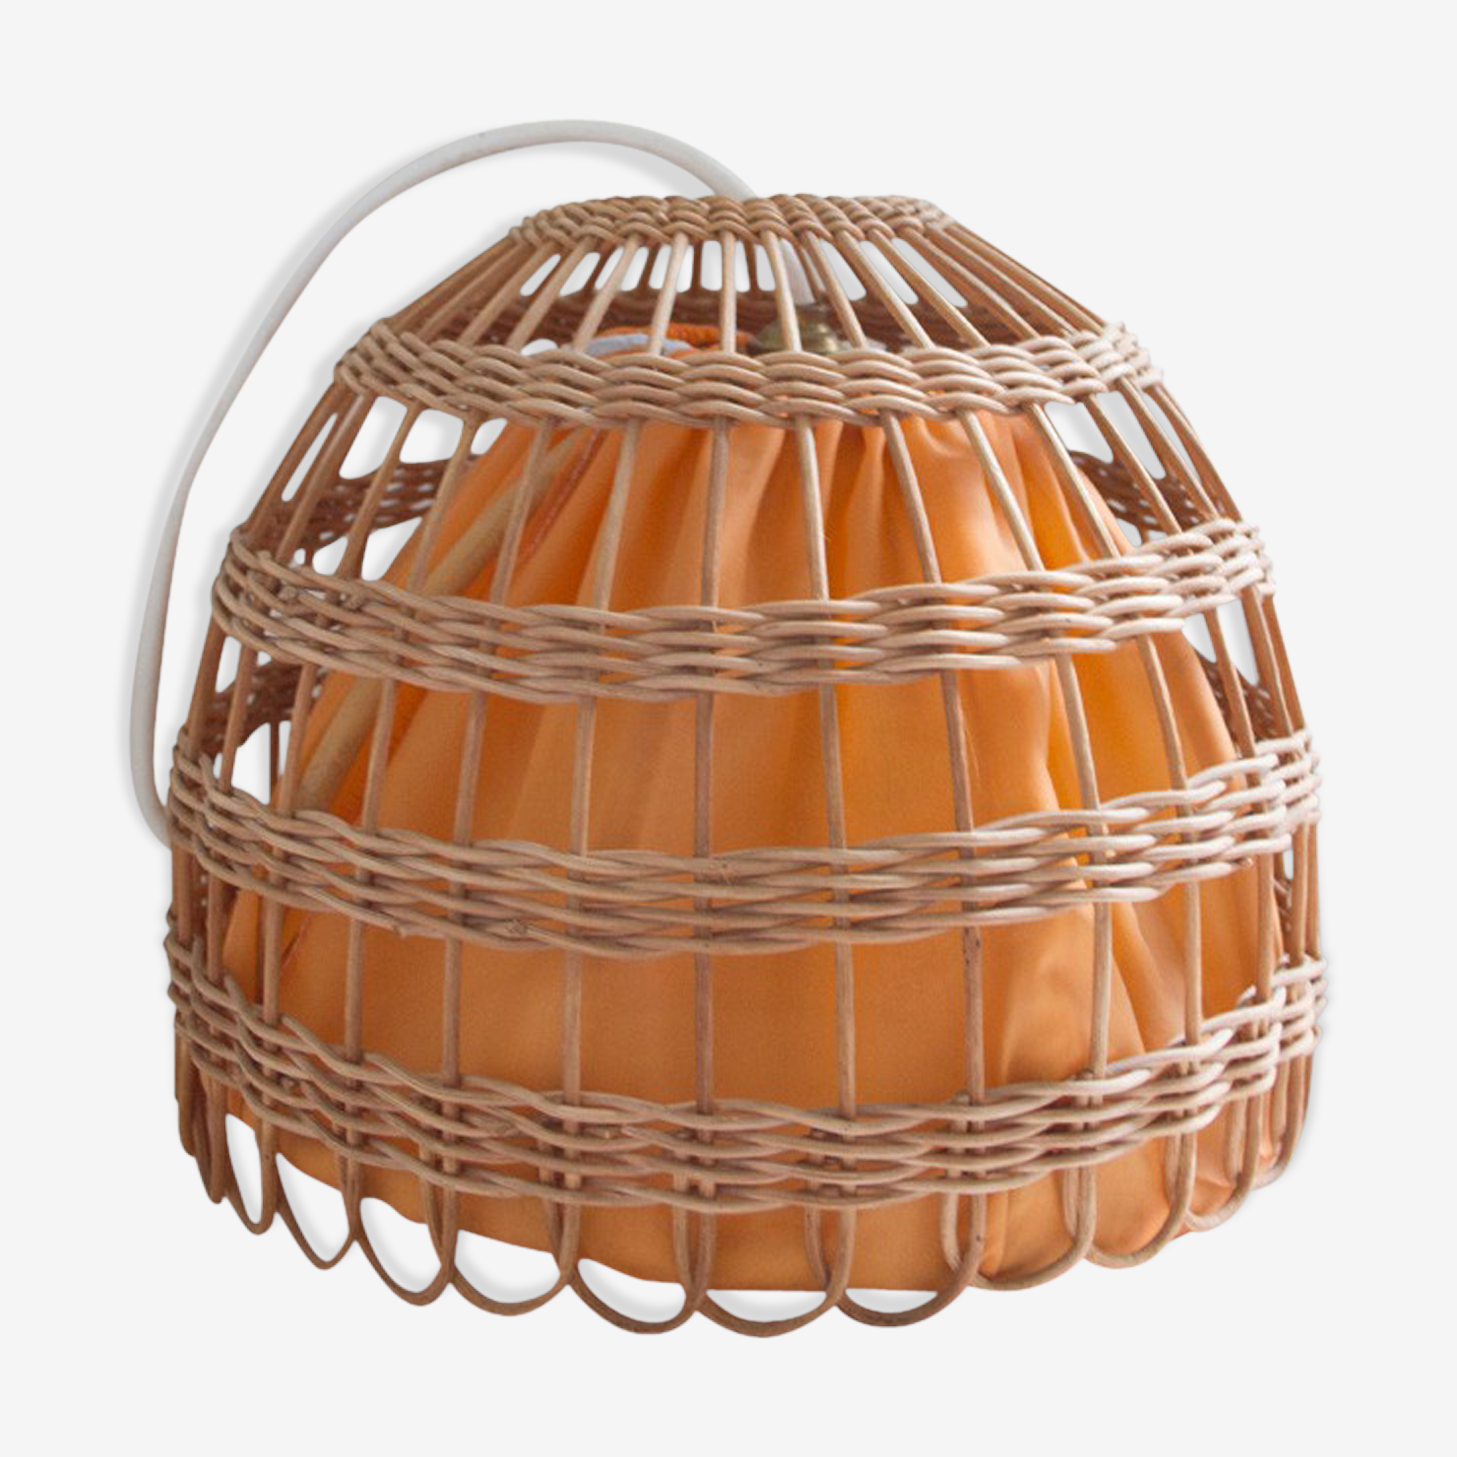 Suspension rattan